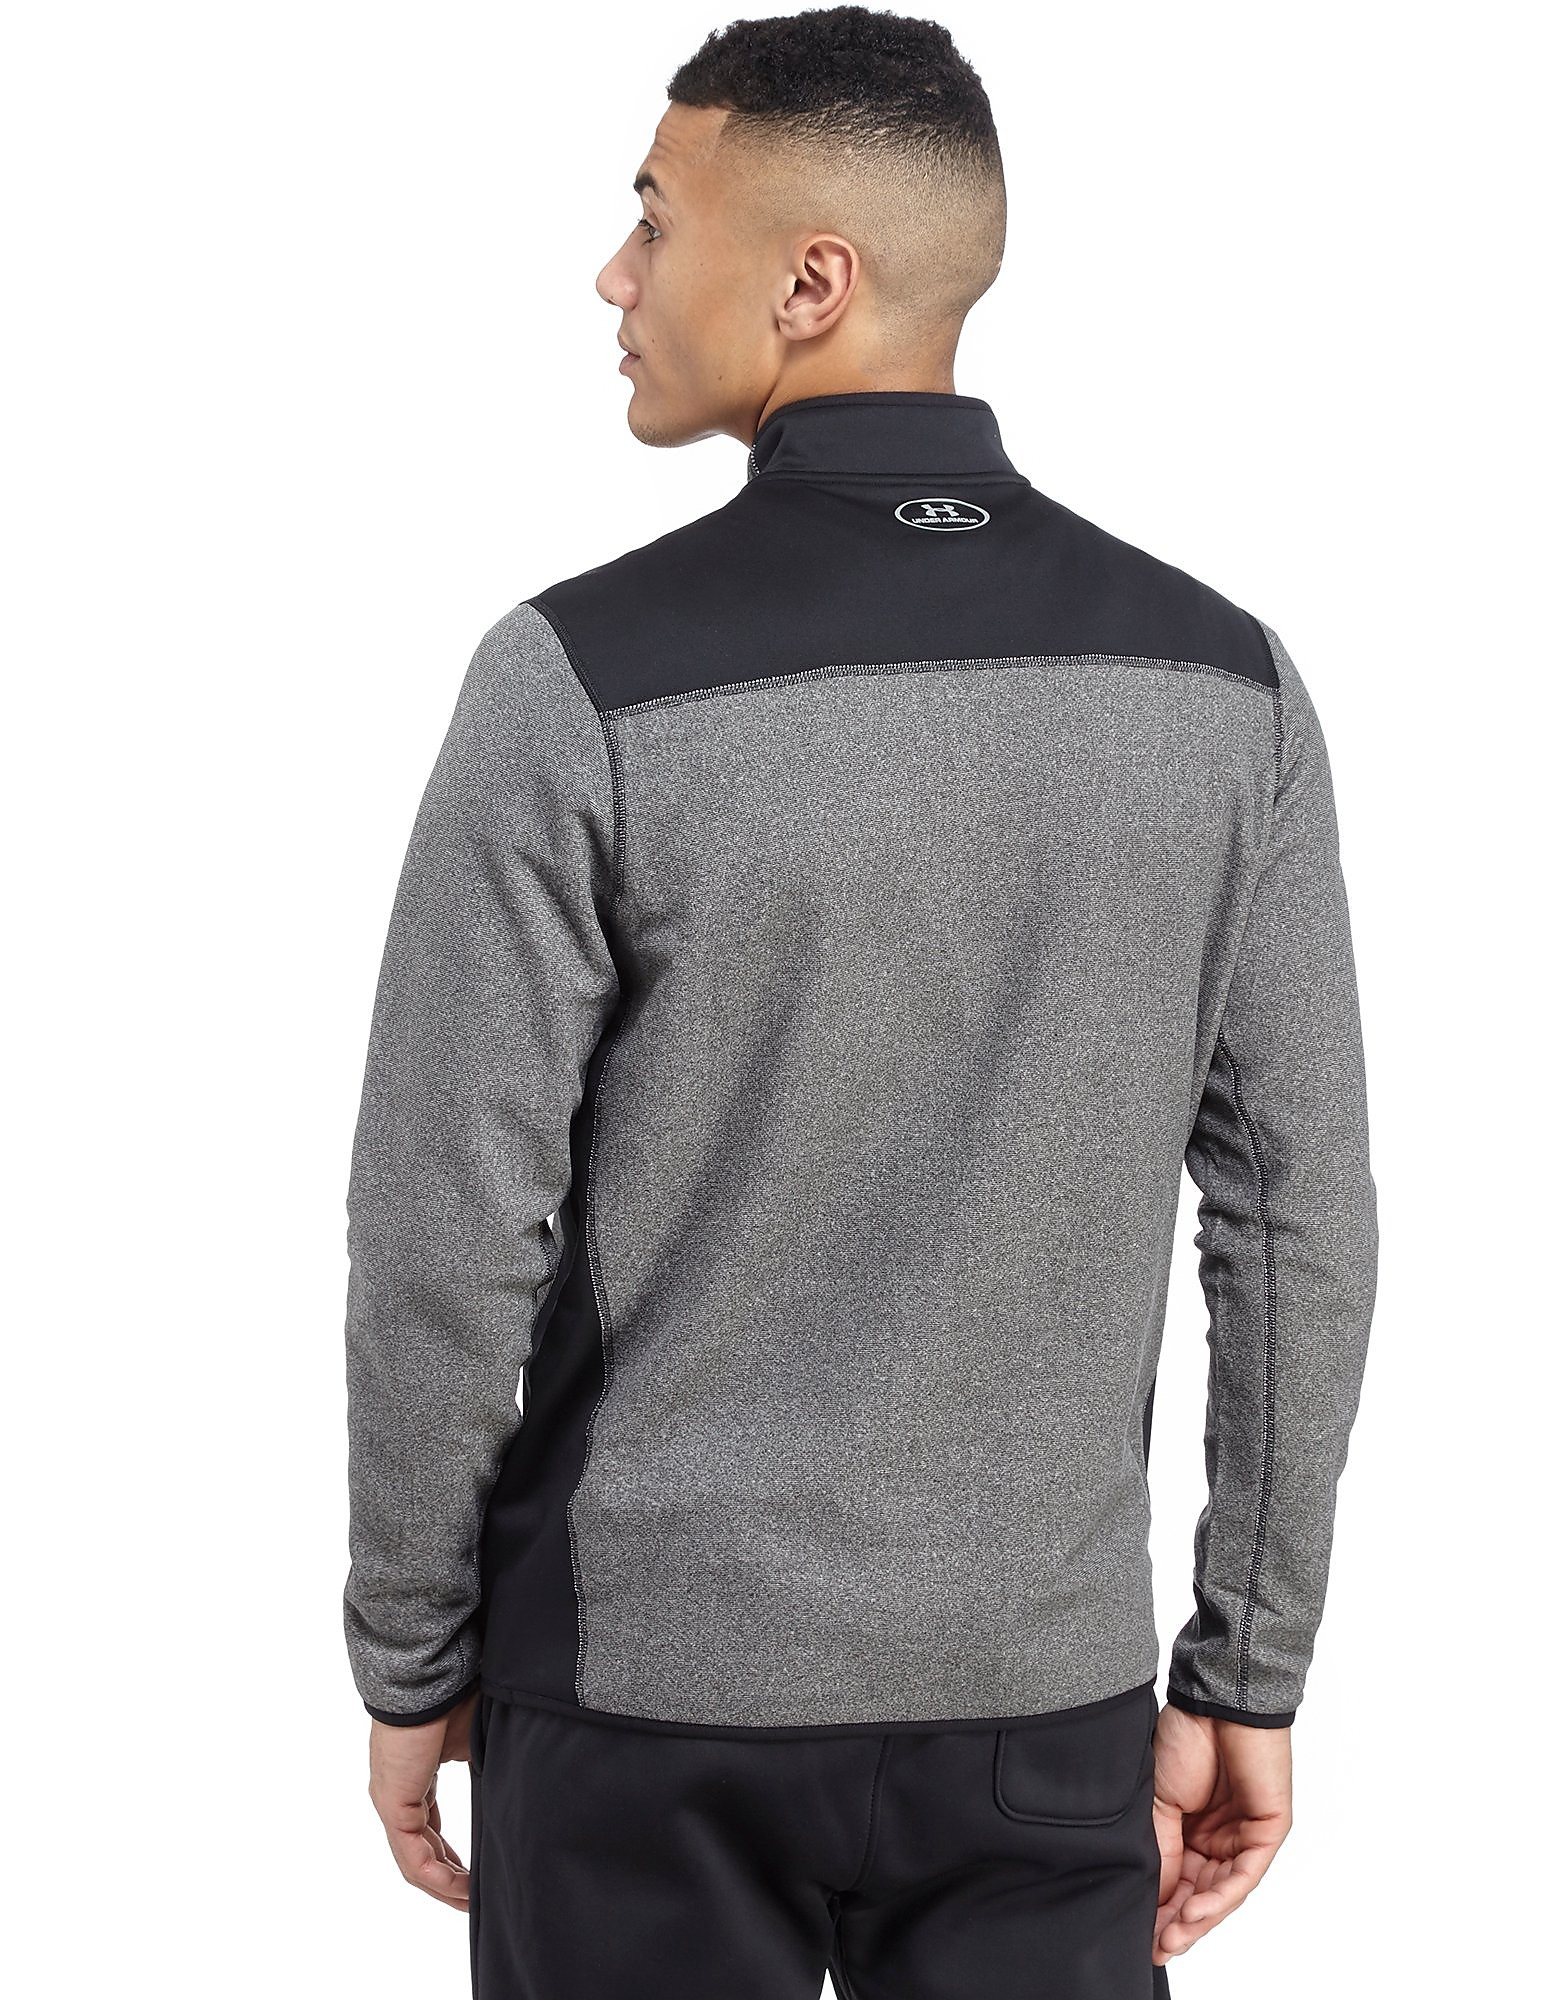 Under Armour ColdGear Quarter Zip Sweatshirt